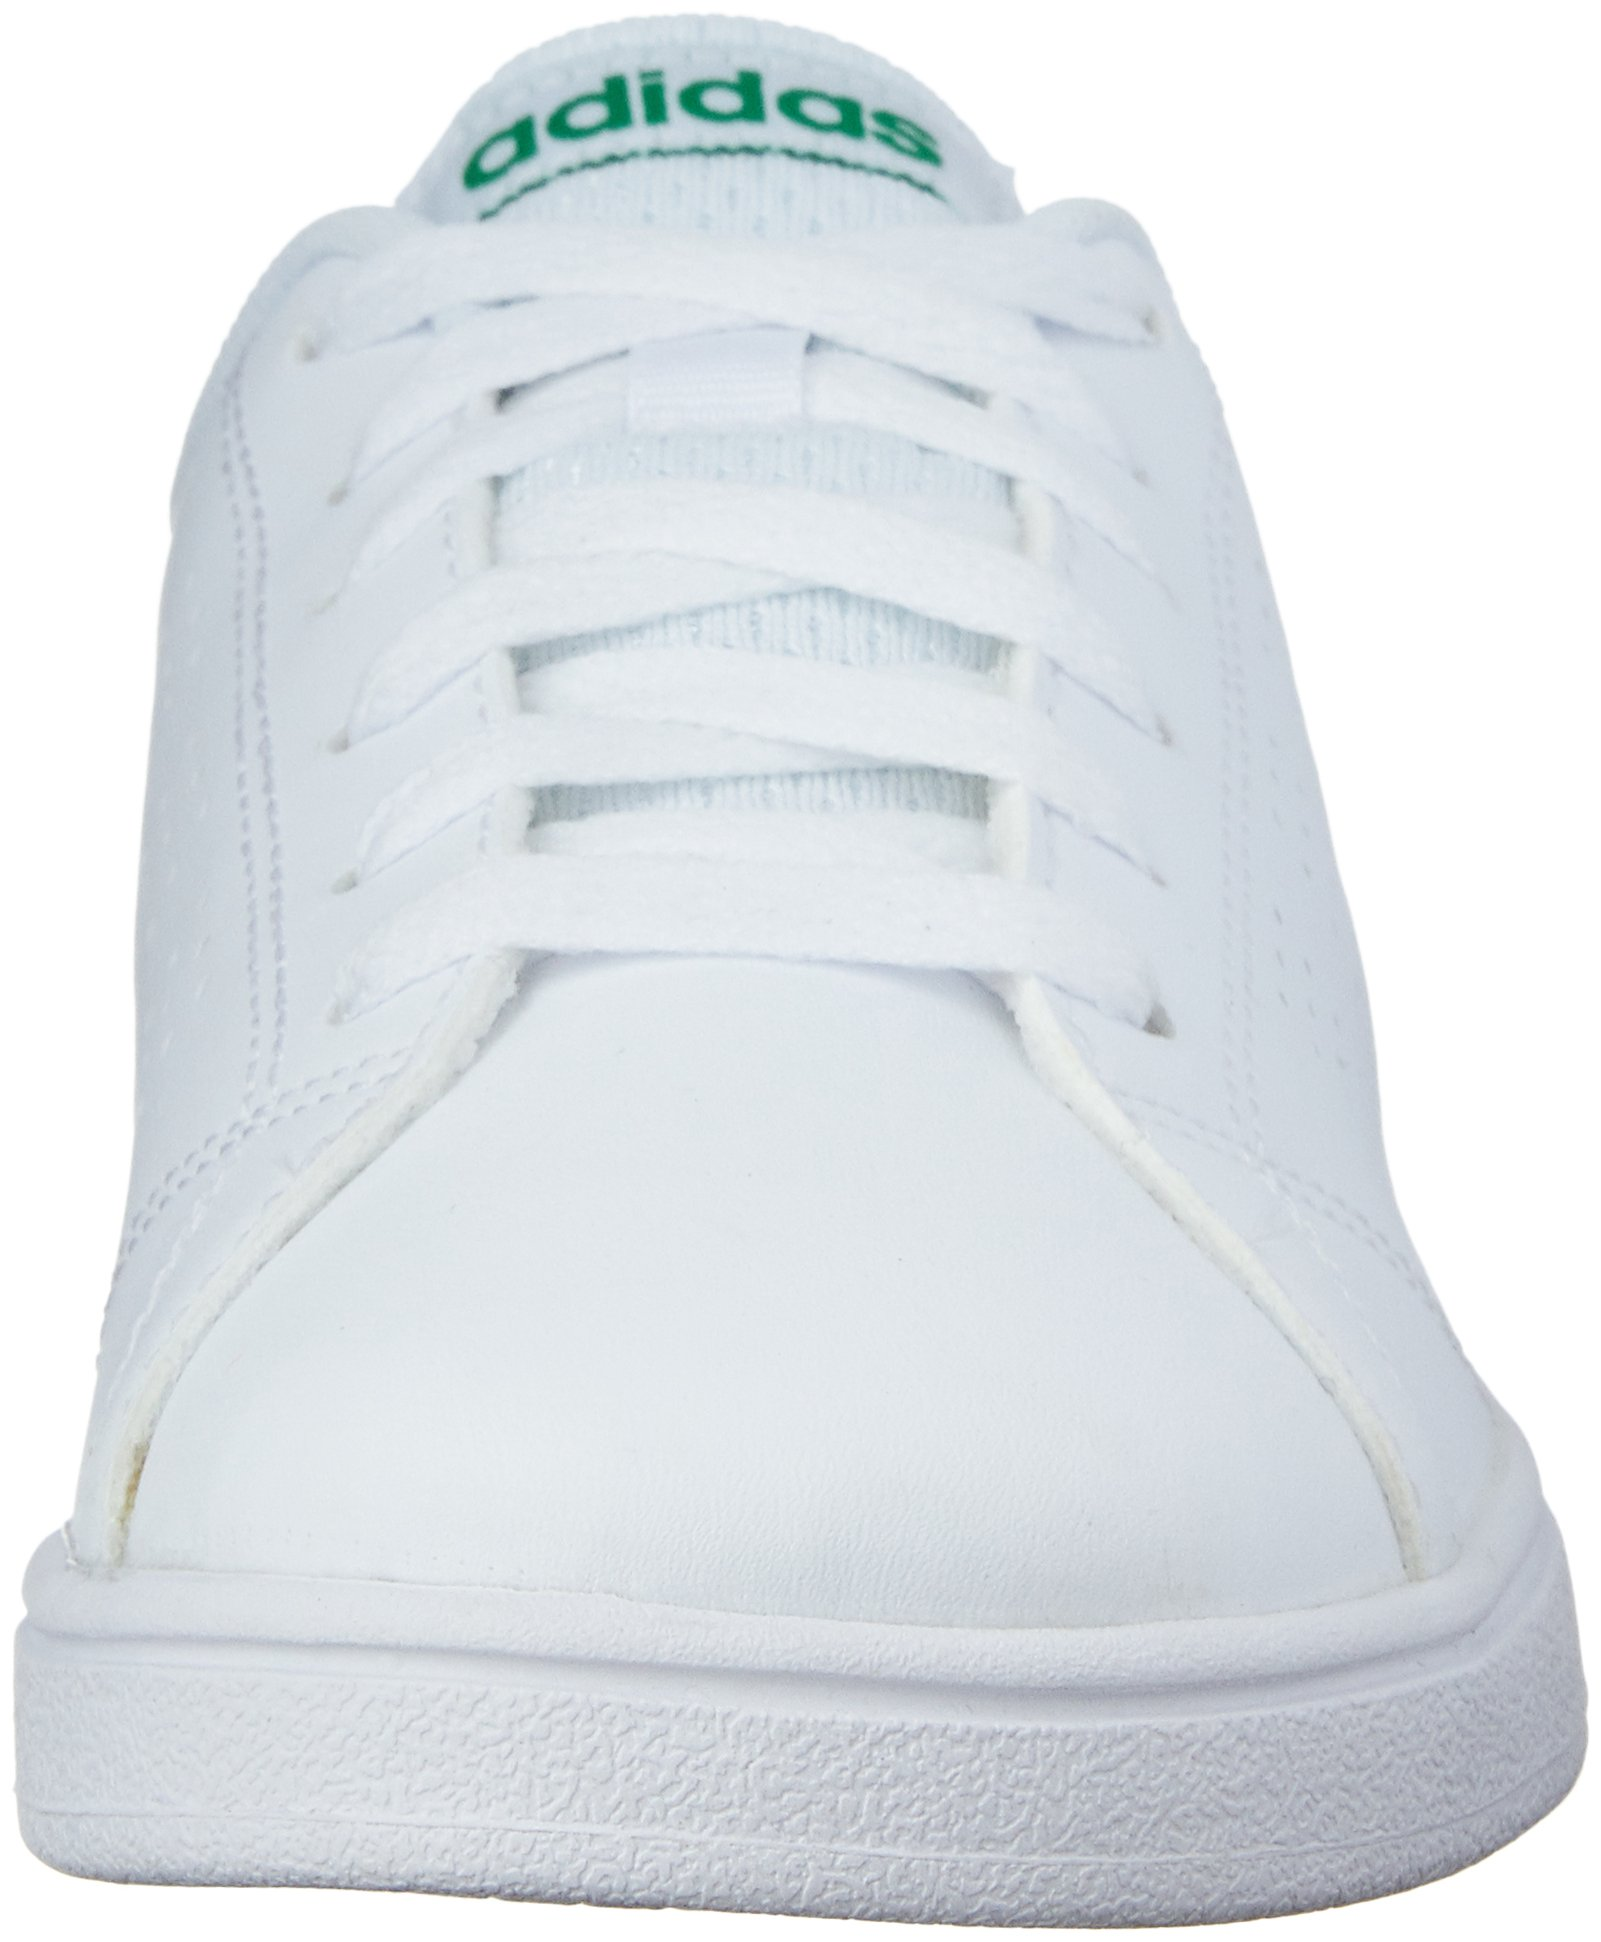 adidas Kids' VS Advantage Clean Sneaker, White/White/Green, 1.5 M US Little Kid by adidas (Image #4)